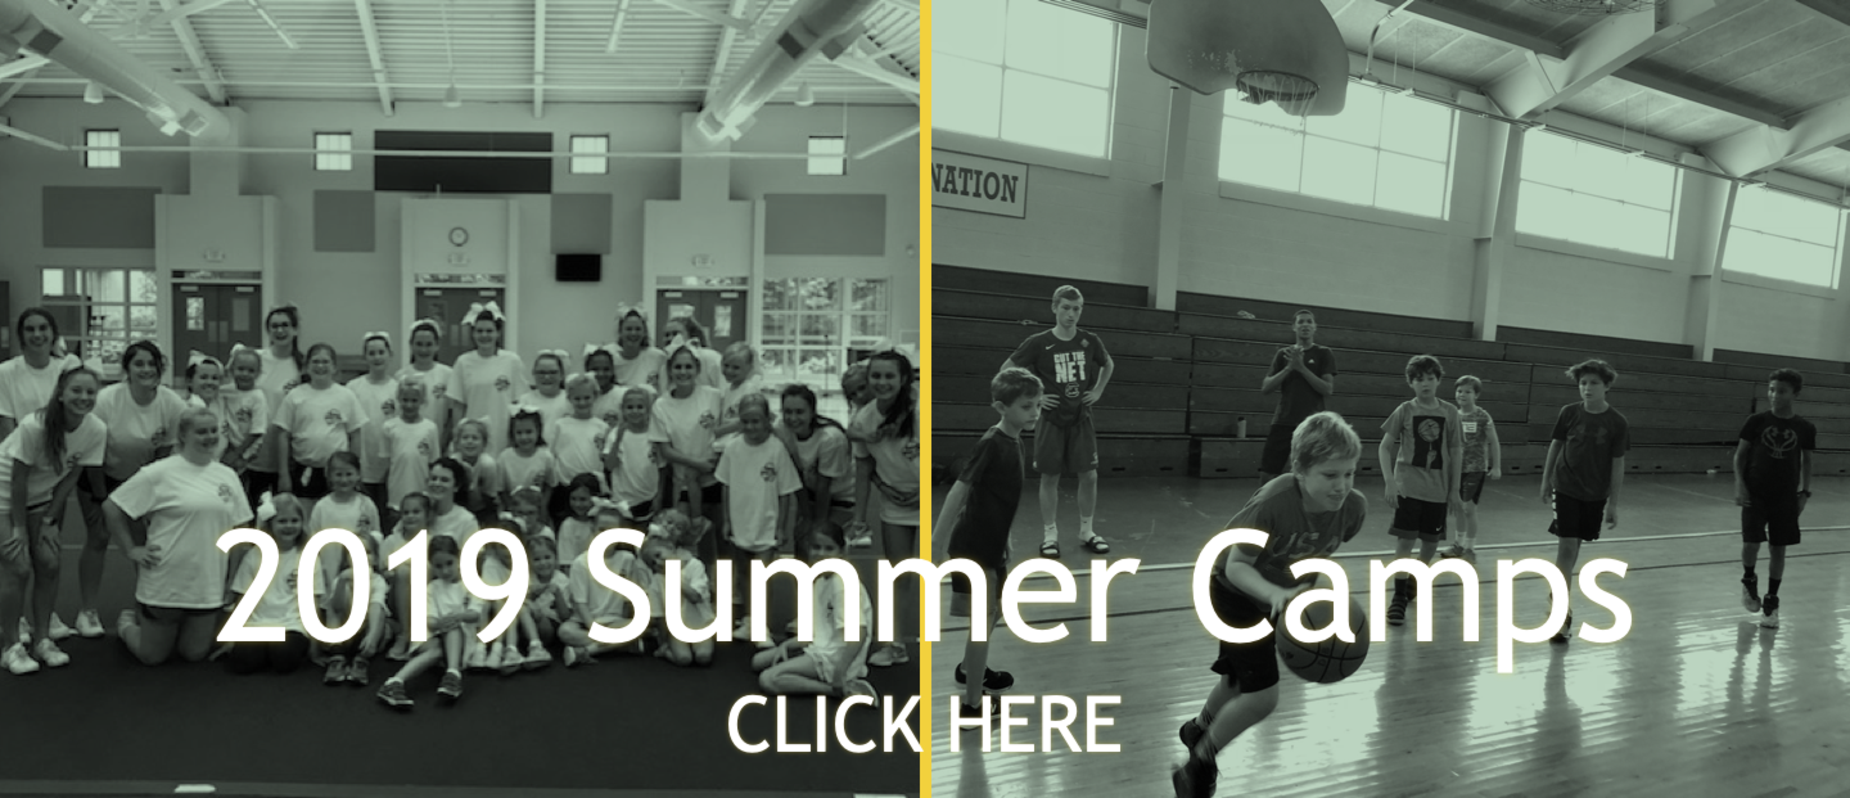 2019 Summer Camps- Click Here